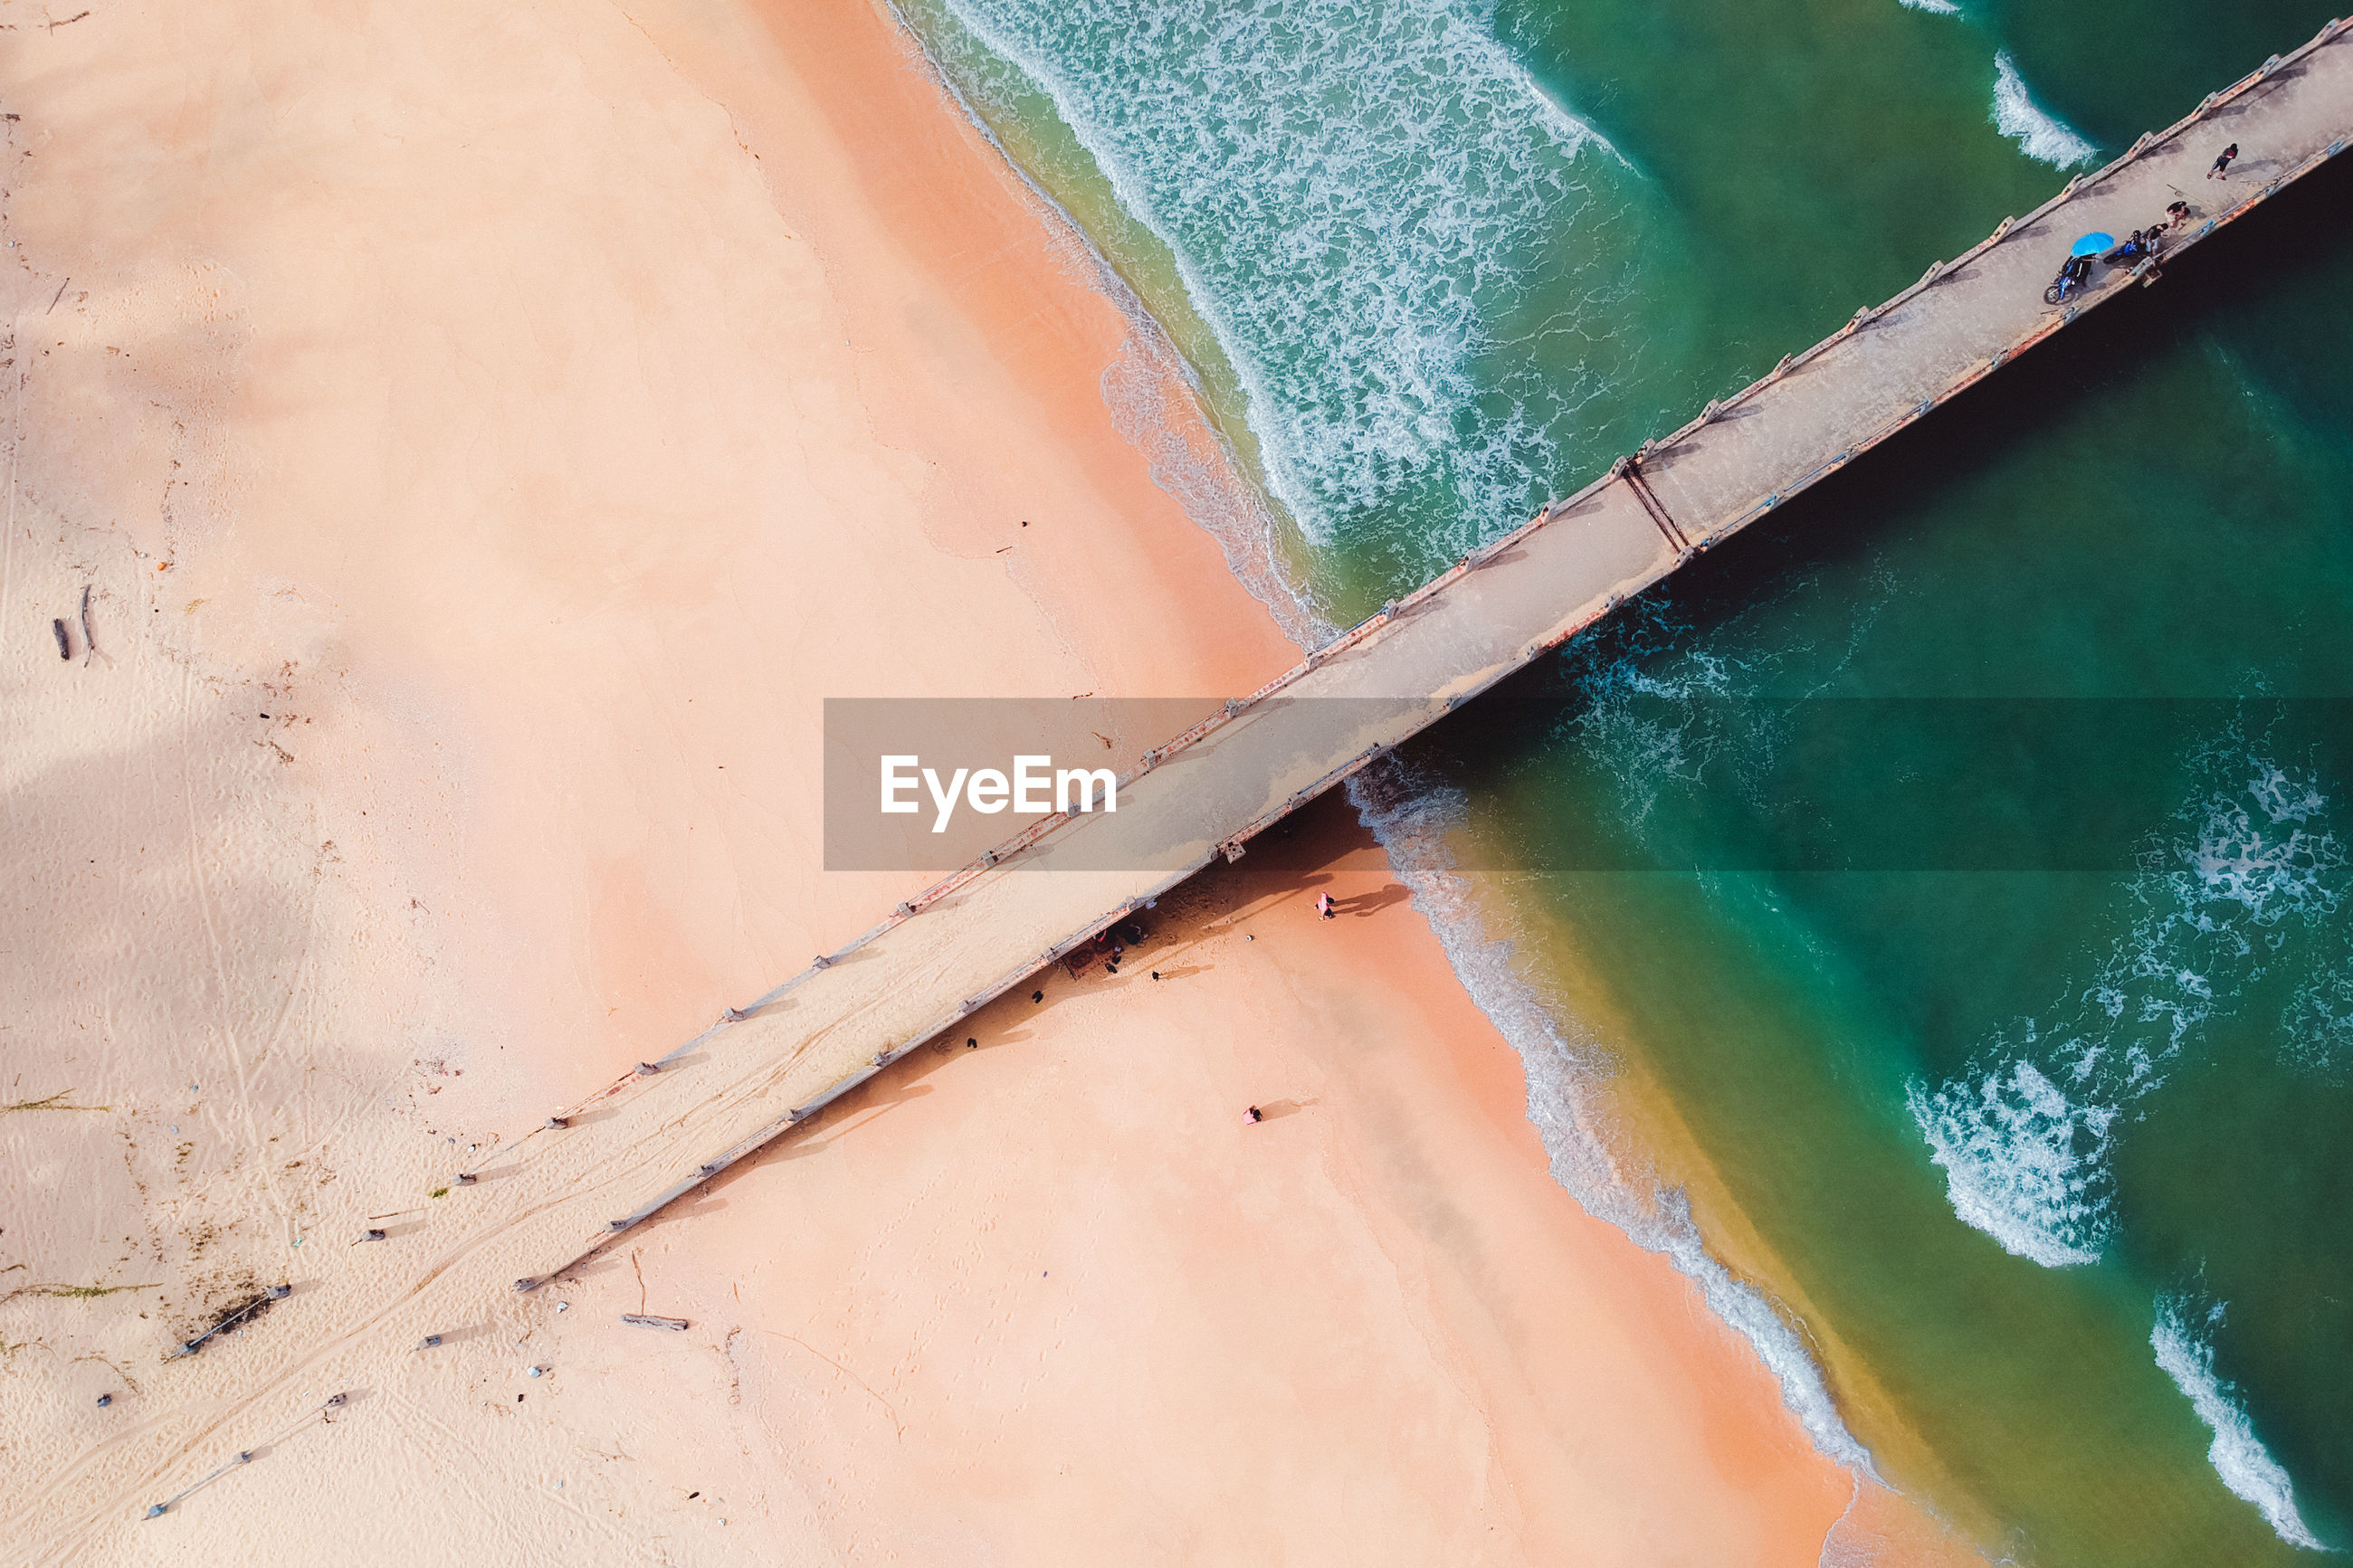 Aerial view of jetty on beach